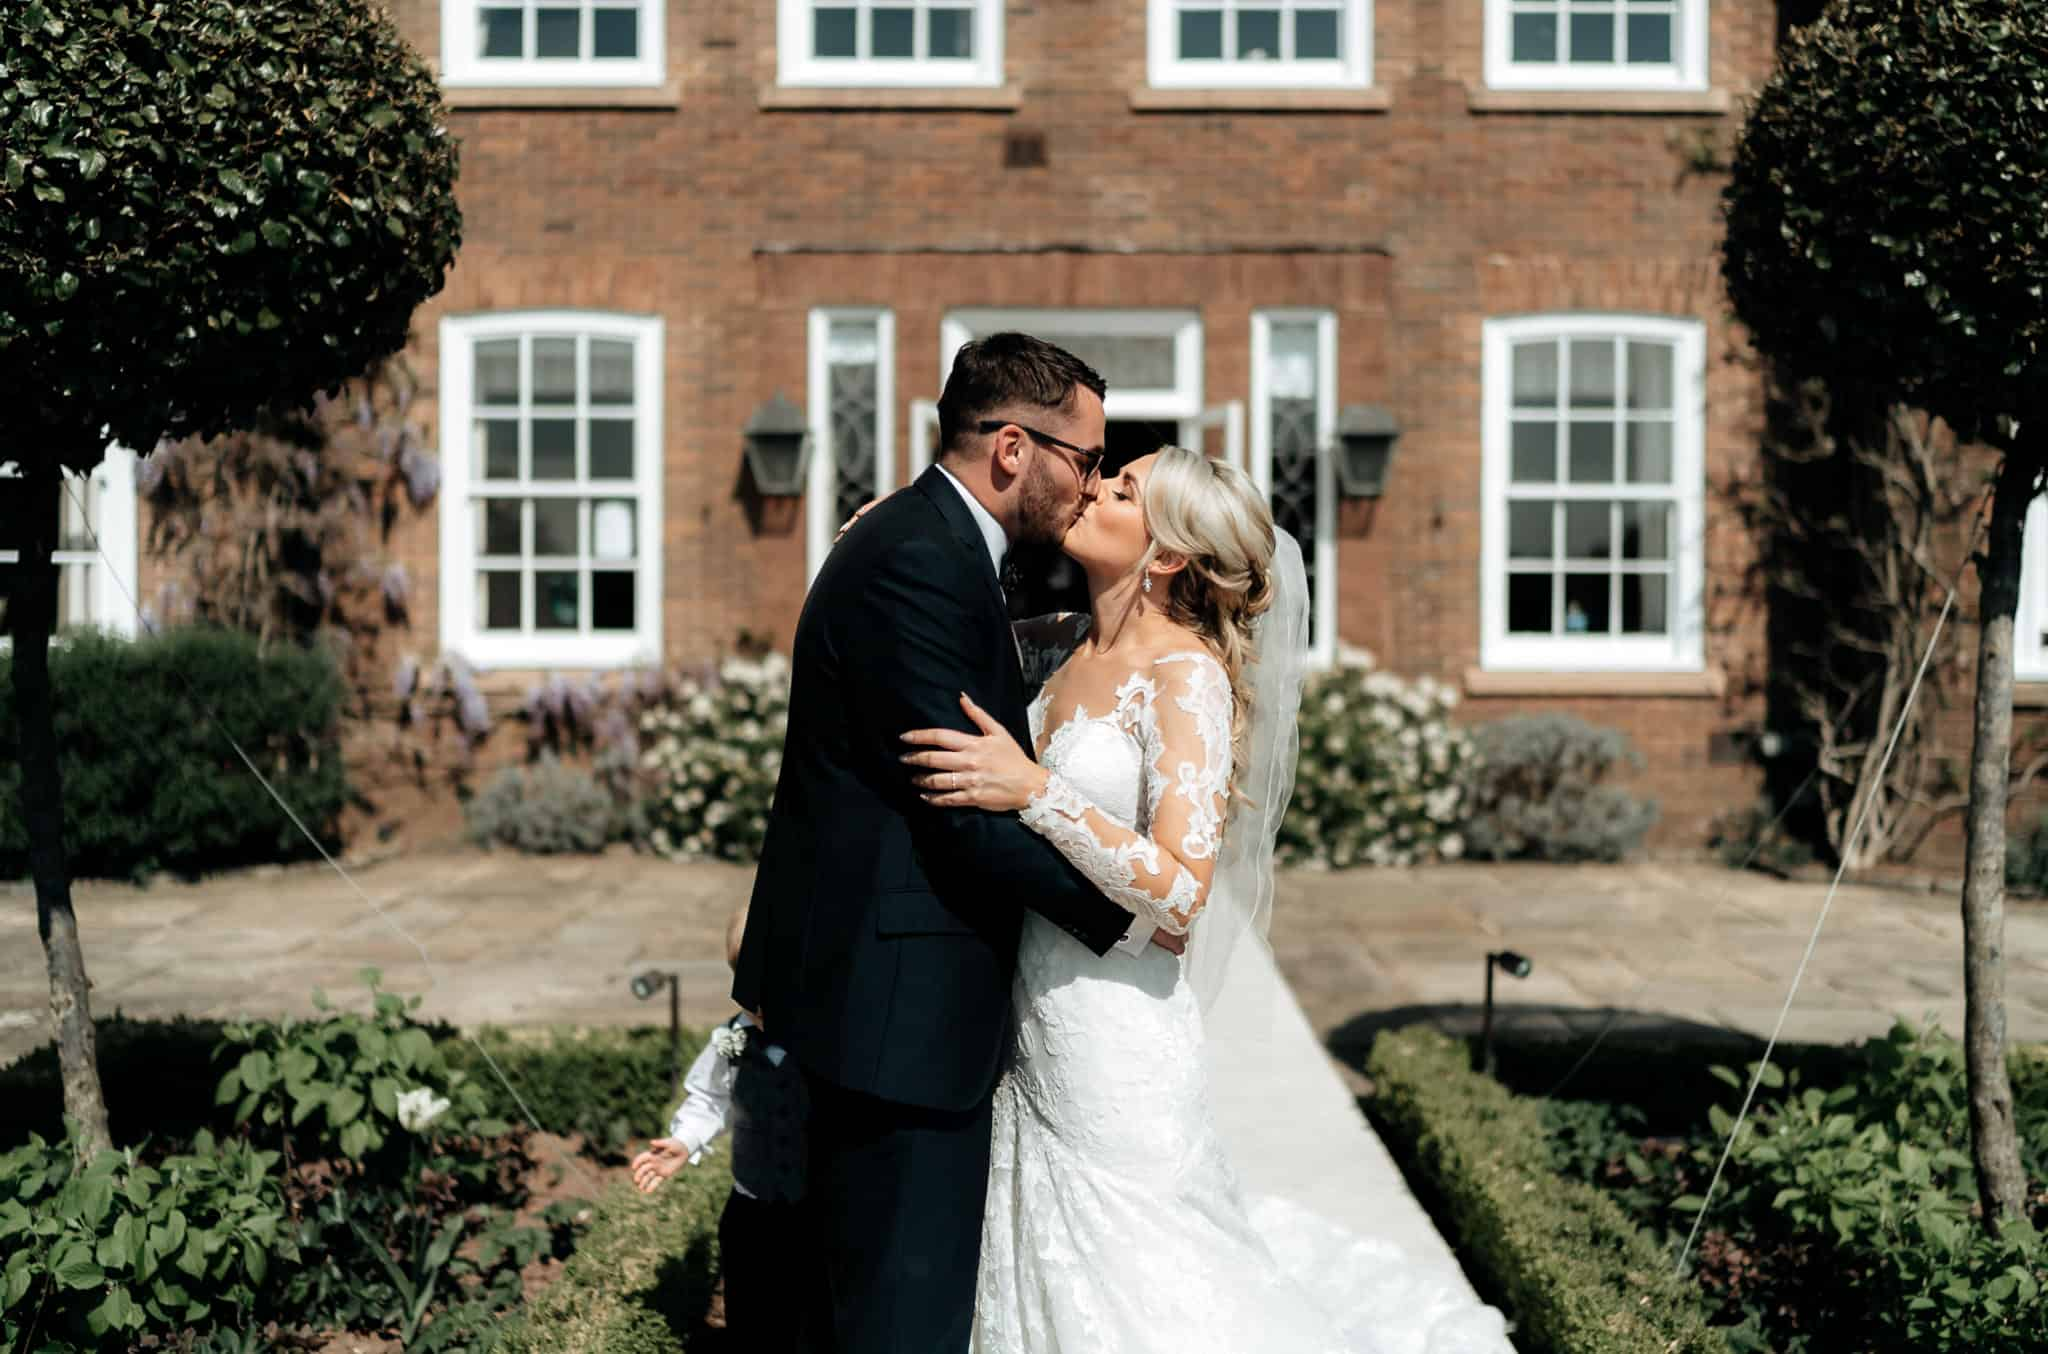 First Kiss at Delamere Manor Wedding venue